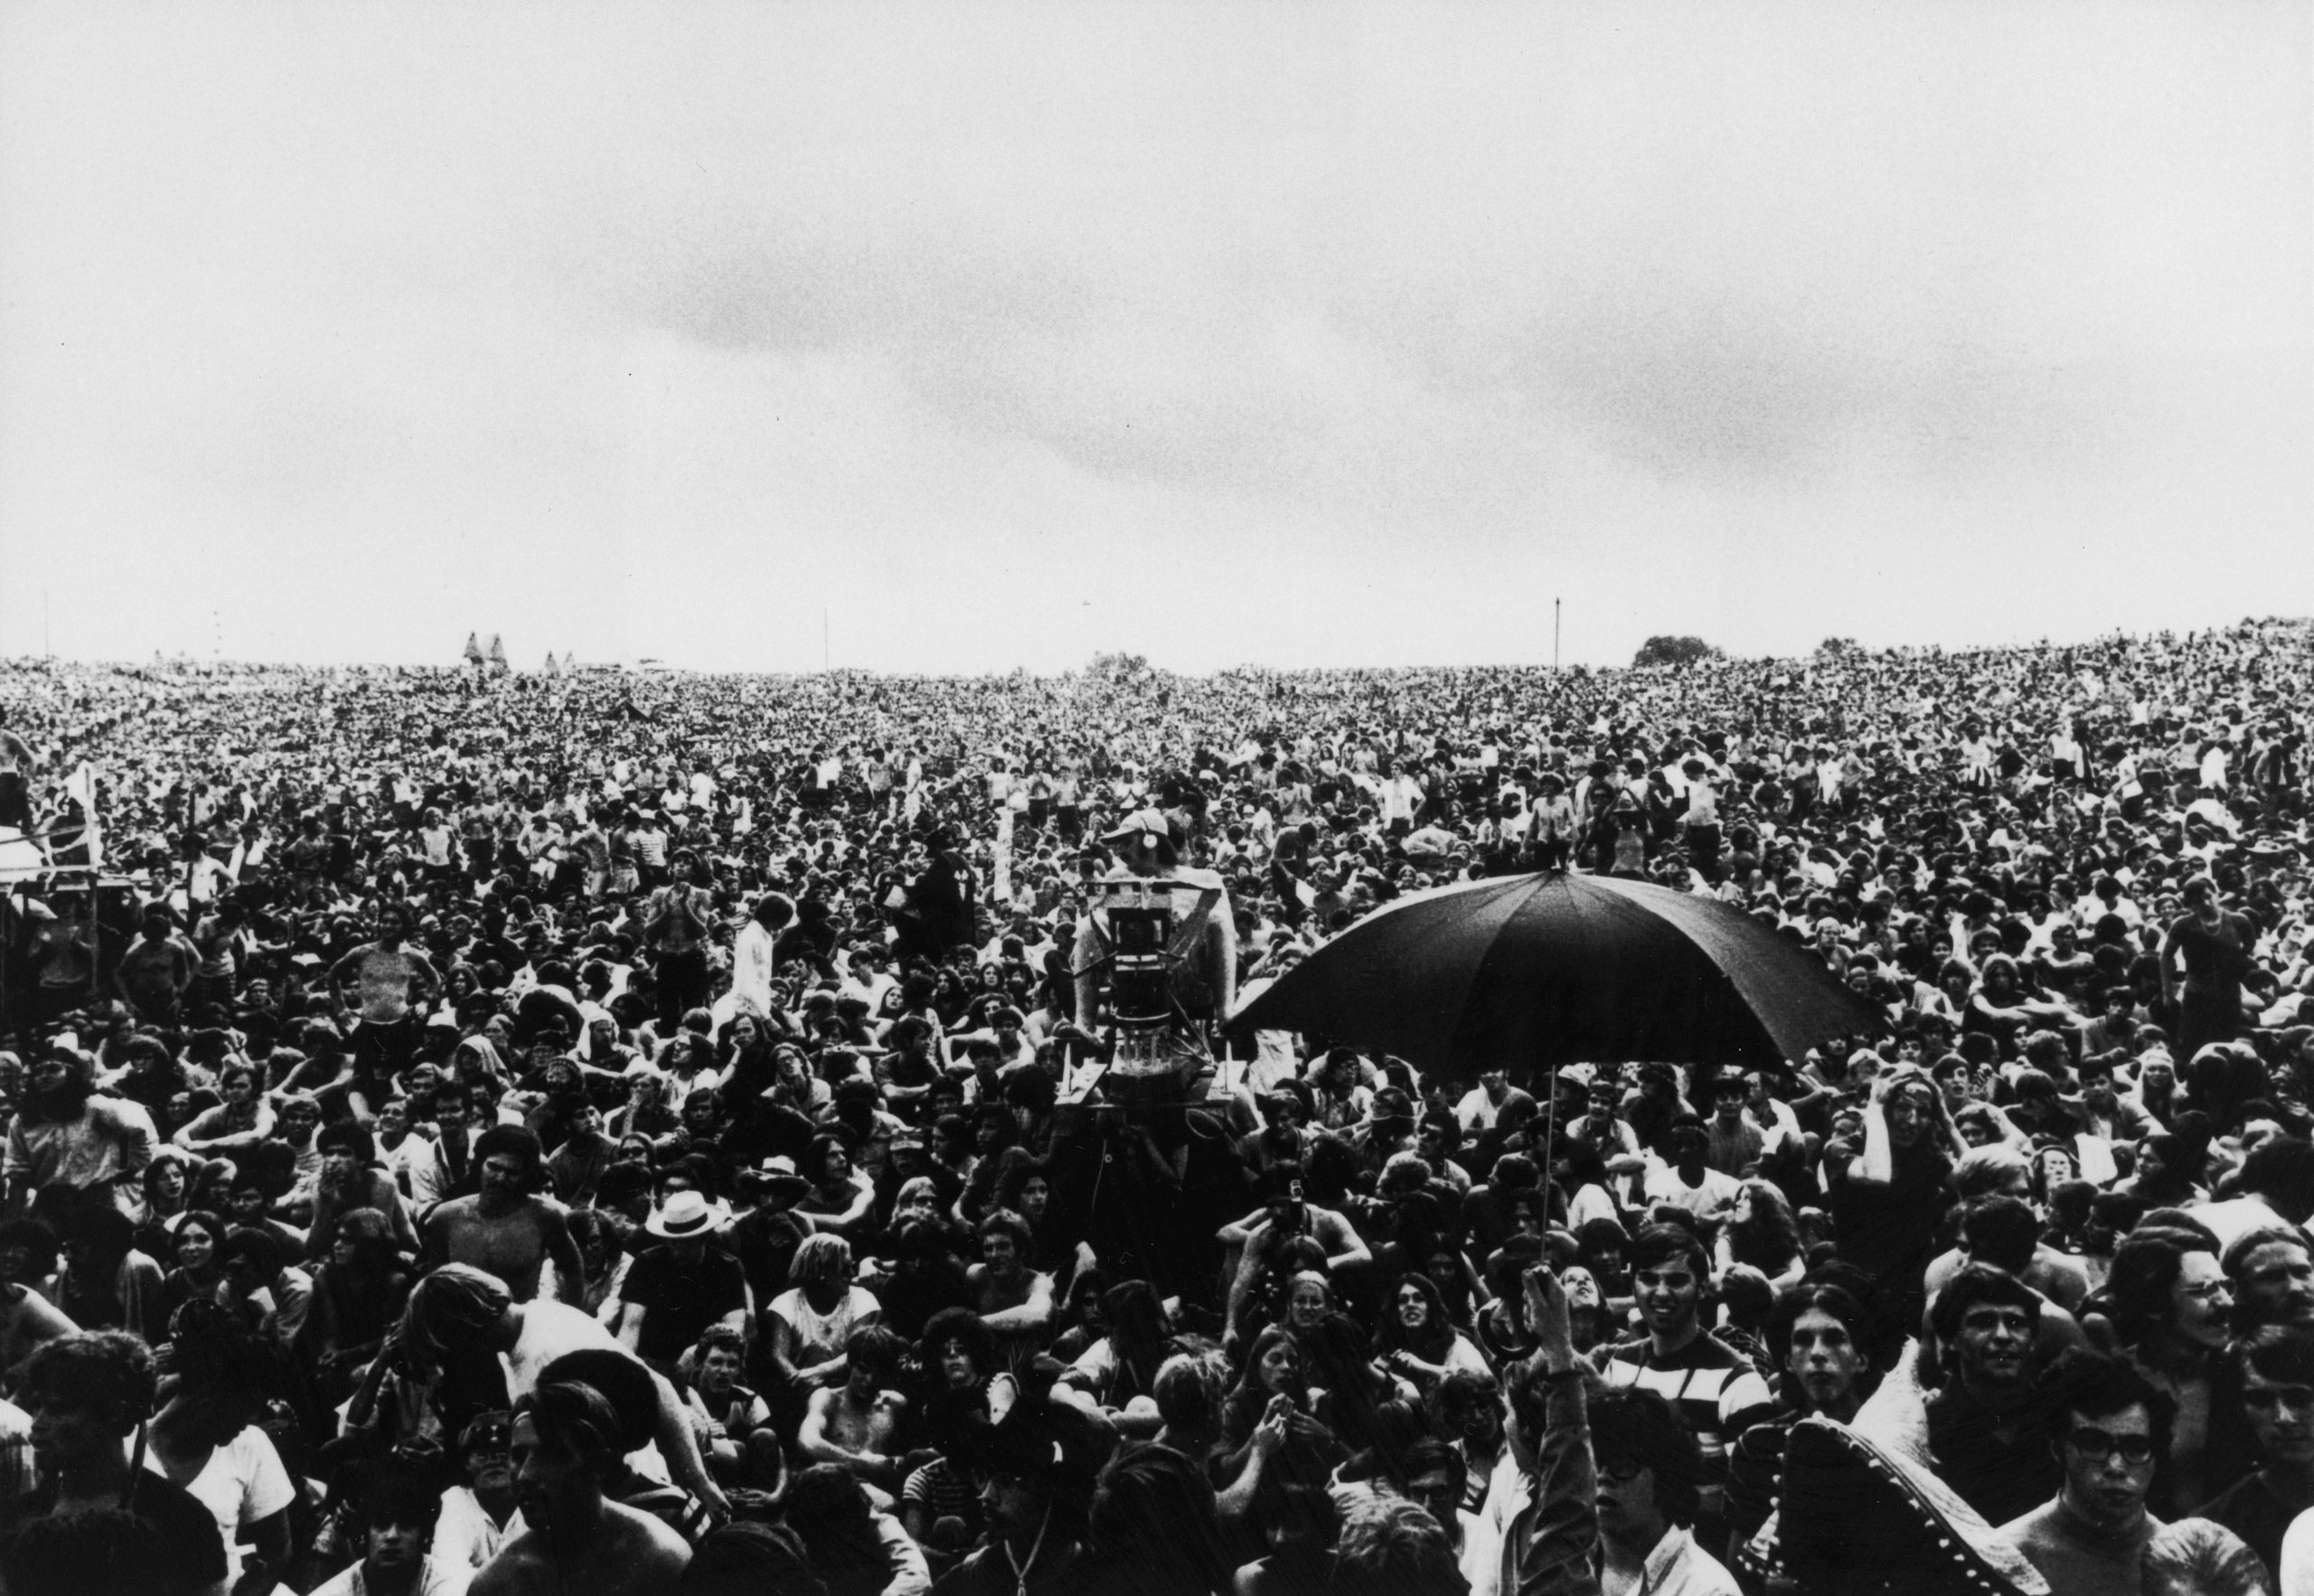 View of the massive crowds at the Woodstock music festival in 1969